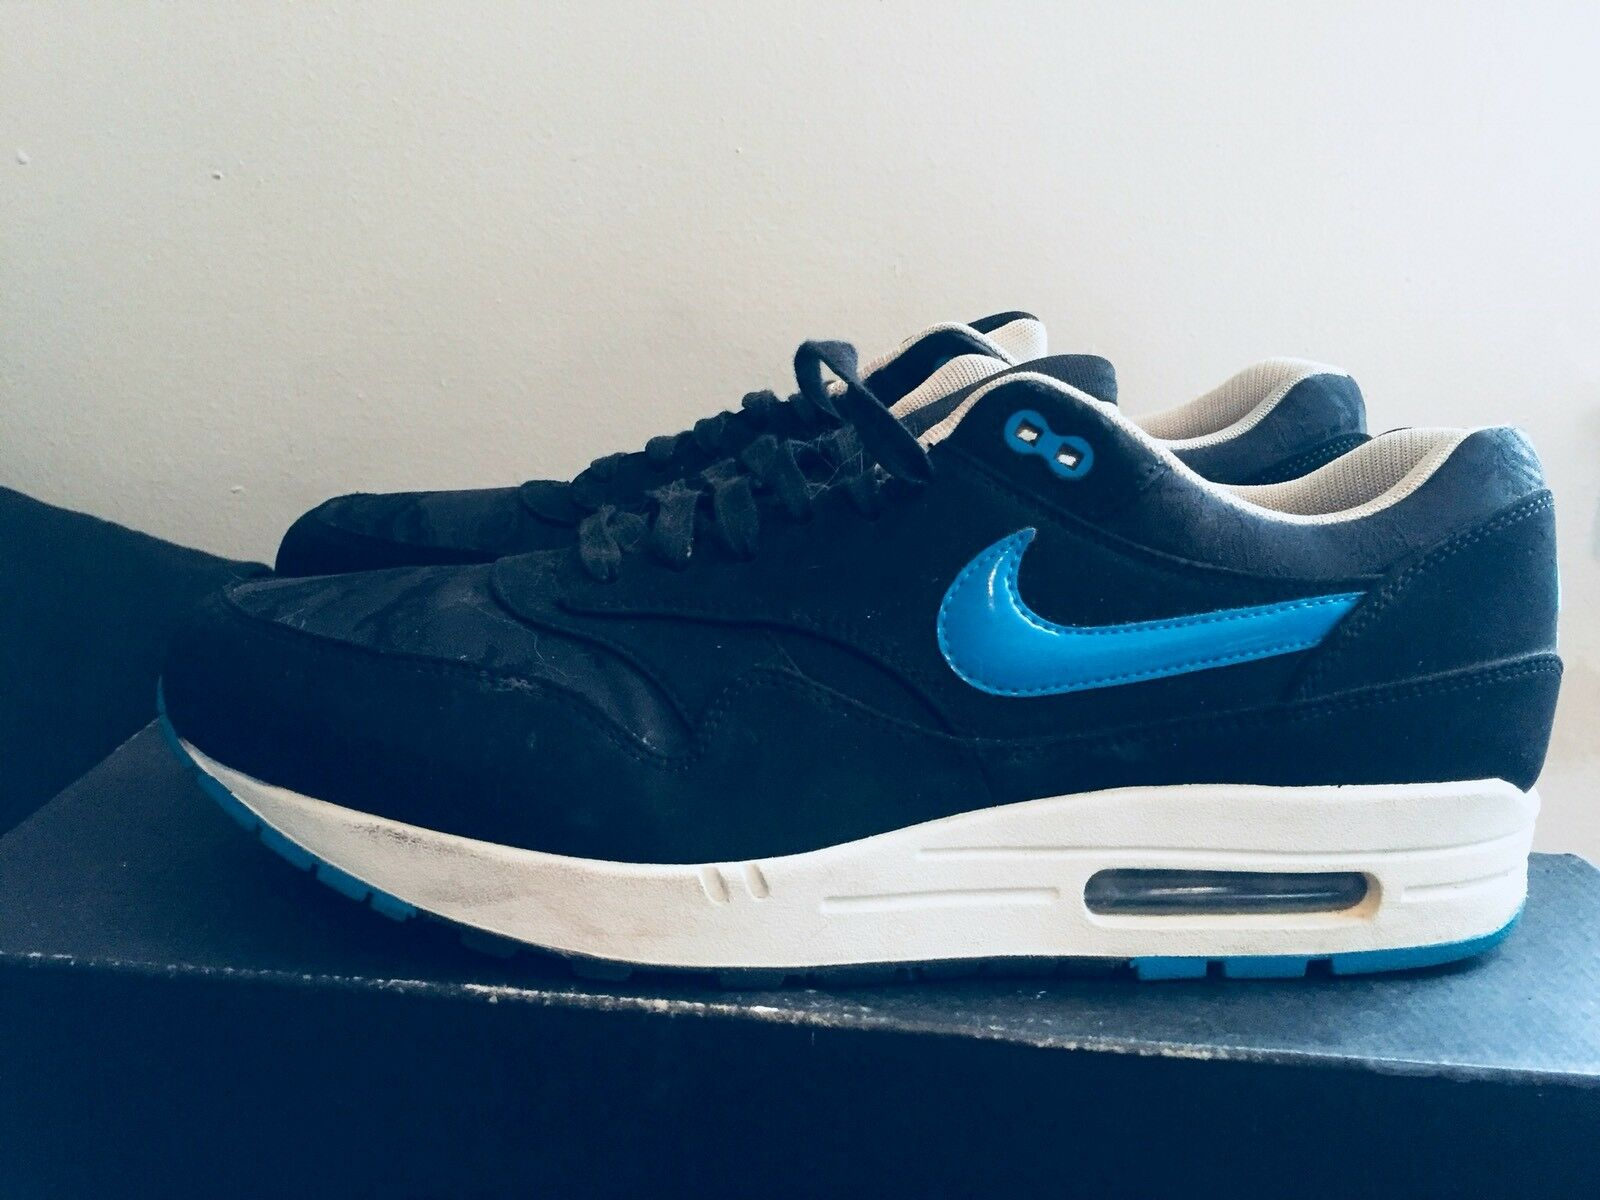 2013 Mens Nike Air Max One PRM Jacquard Camp Black bluee Size 13 Used Rare DS